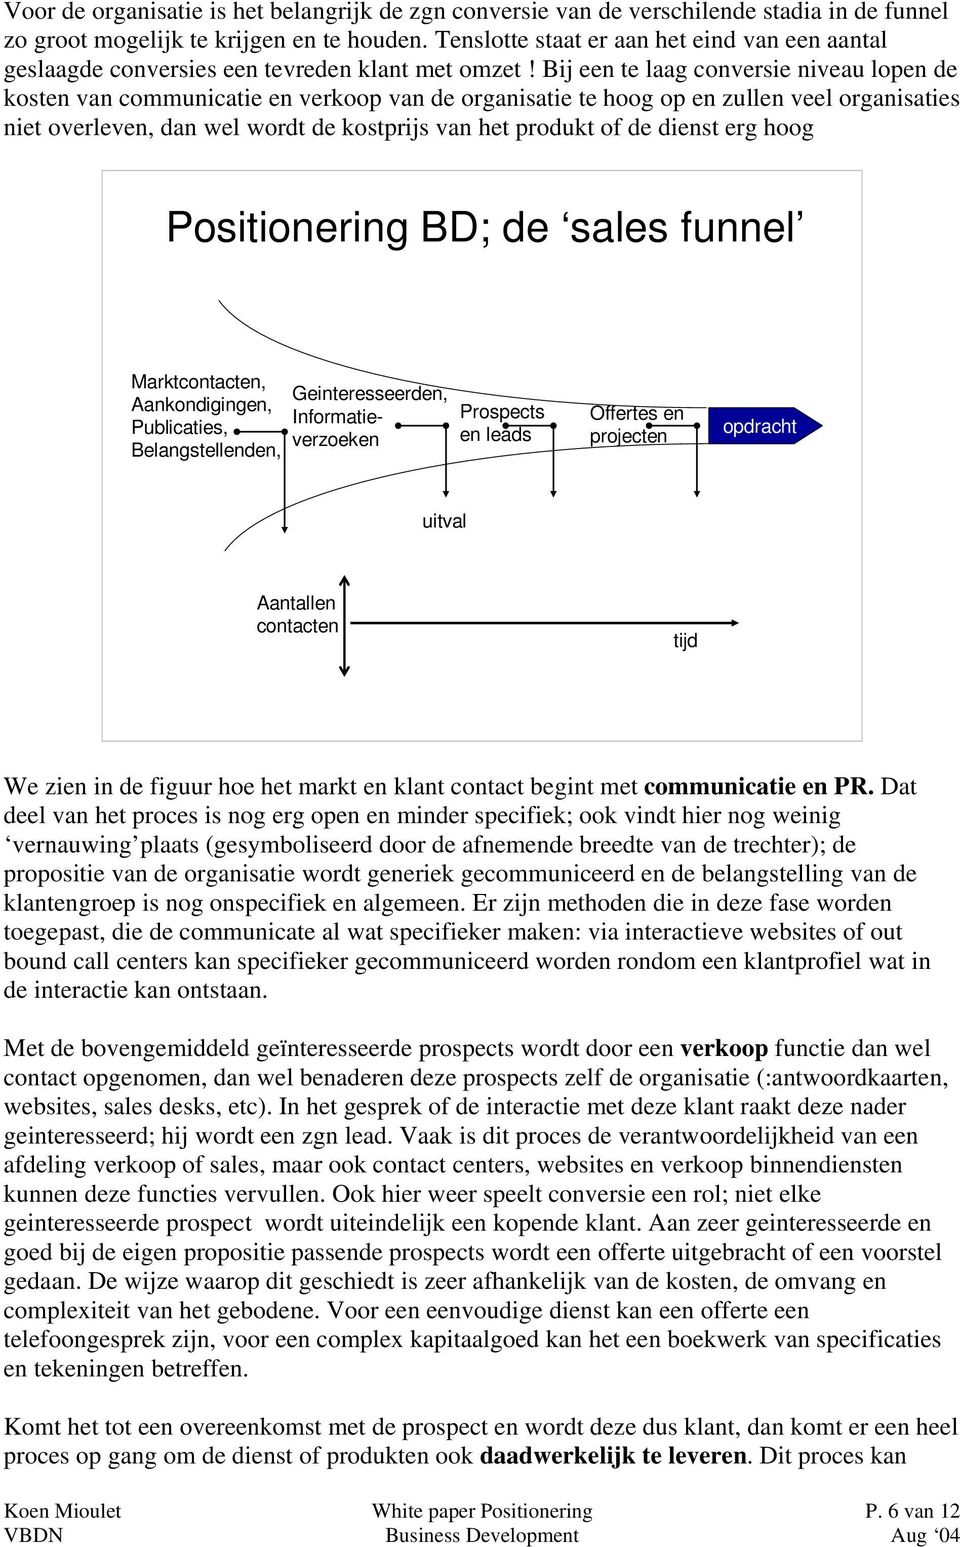 business development paper Paper is to contribute to this literature by presenting an integrative framework to distinguish and relate the concepts of business model, strategy, and tactics  put succinctly, business model refers to the logic of the firm, the way it operates and how it.